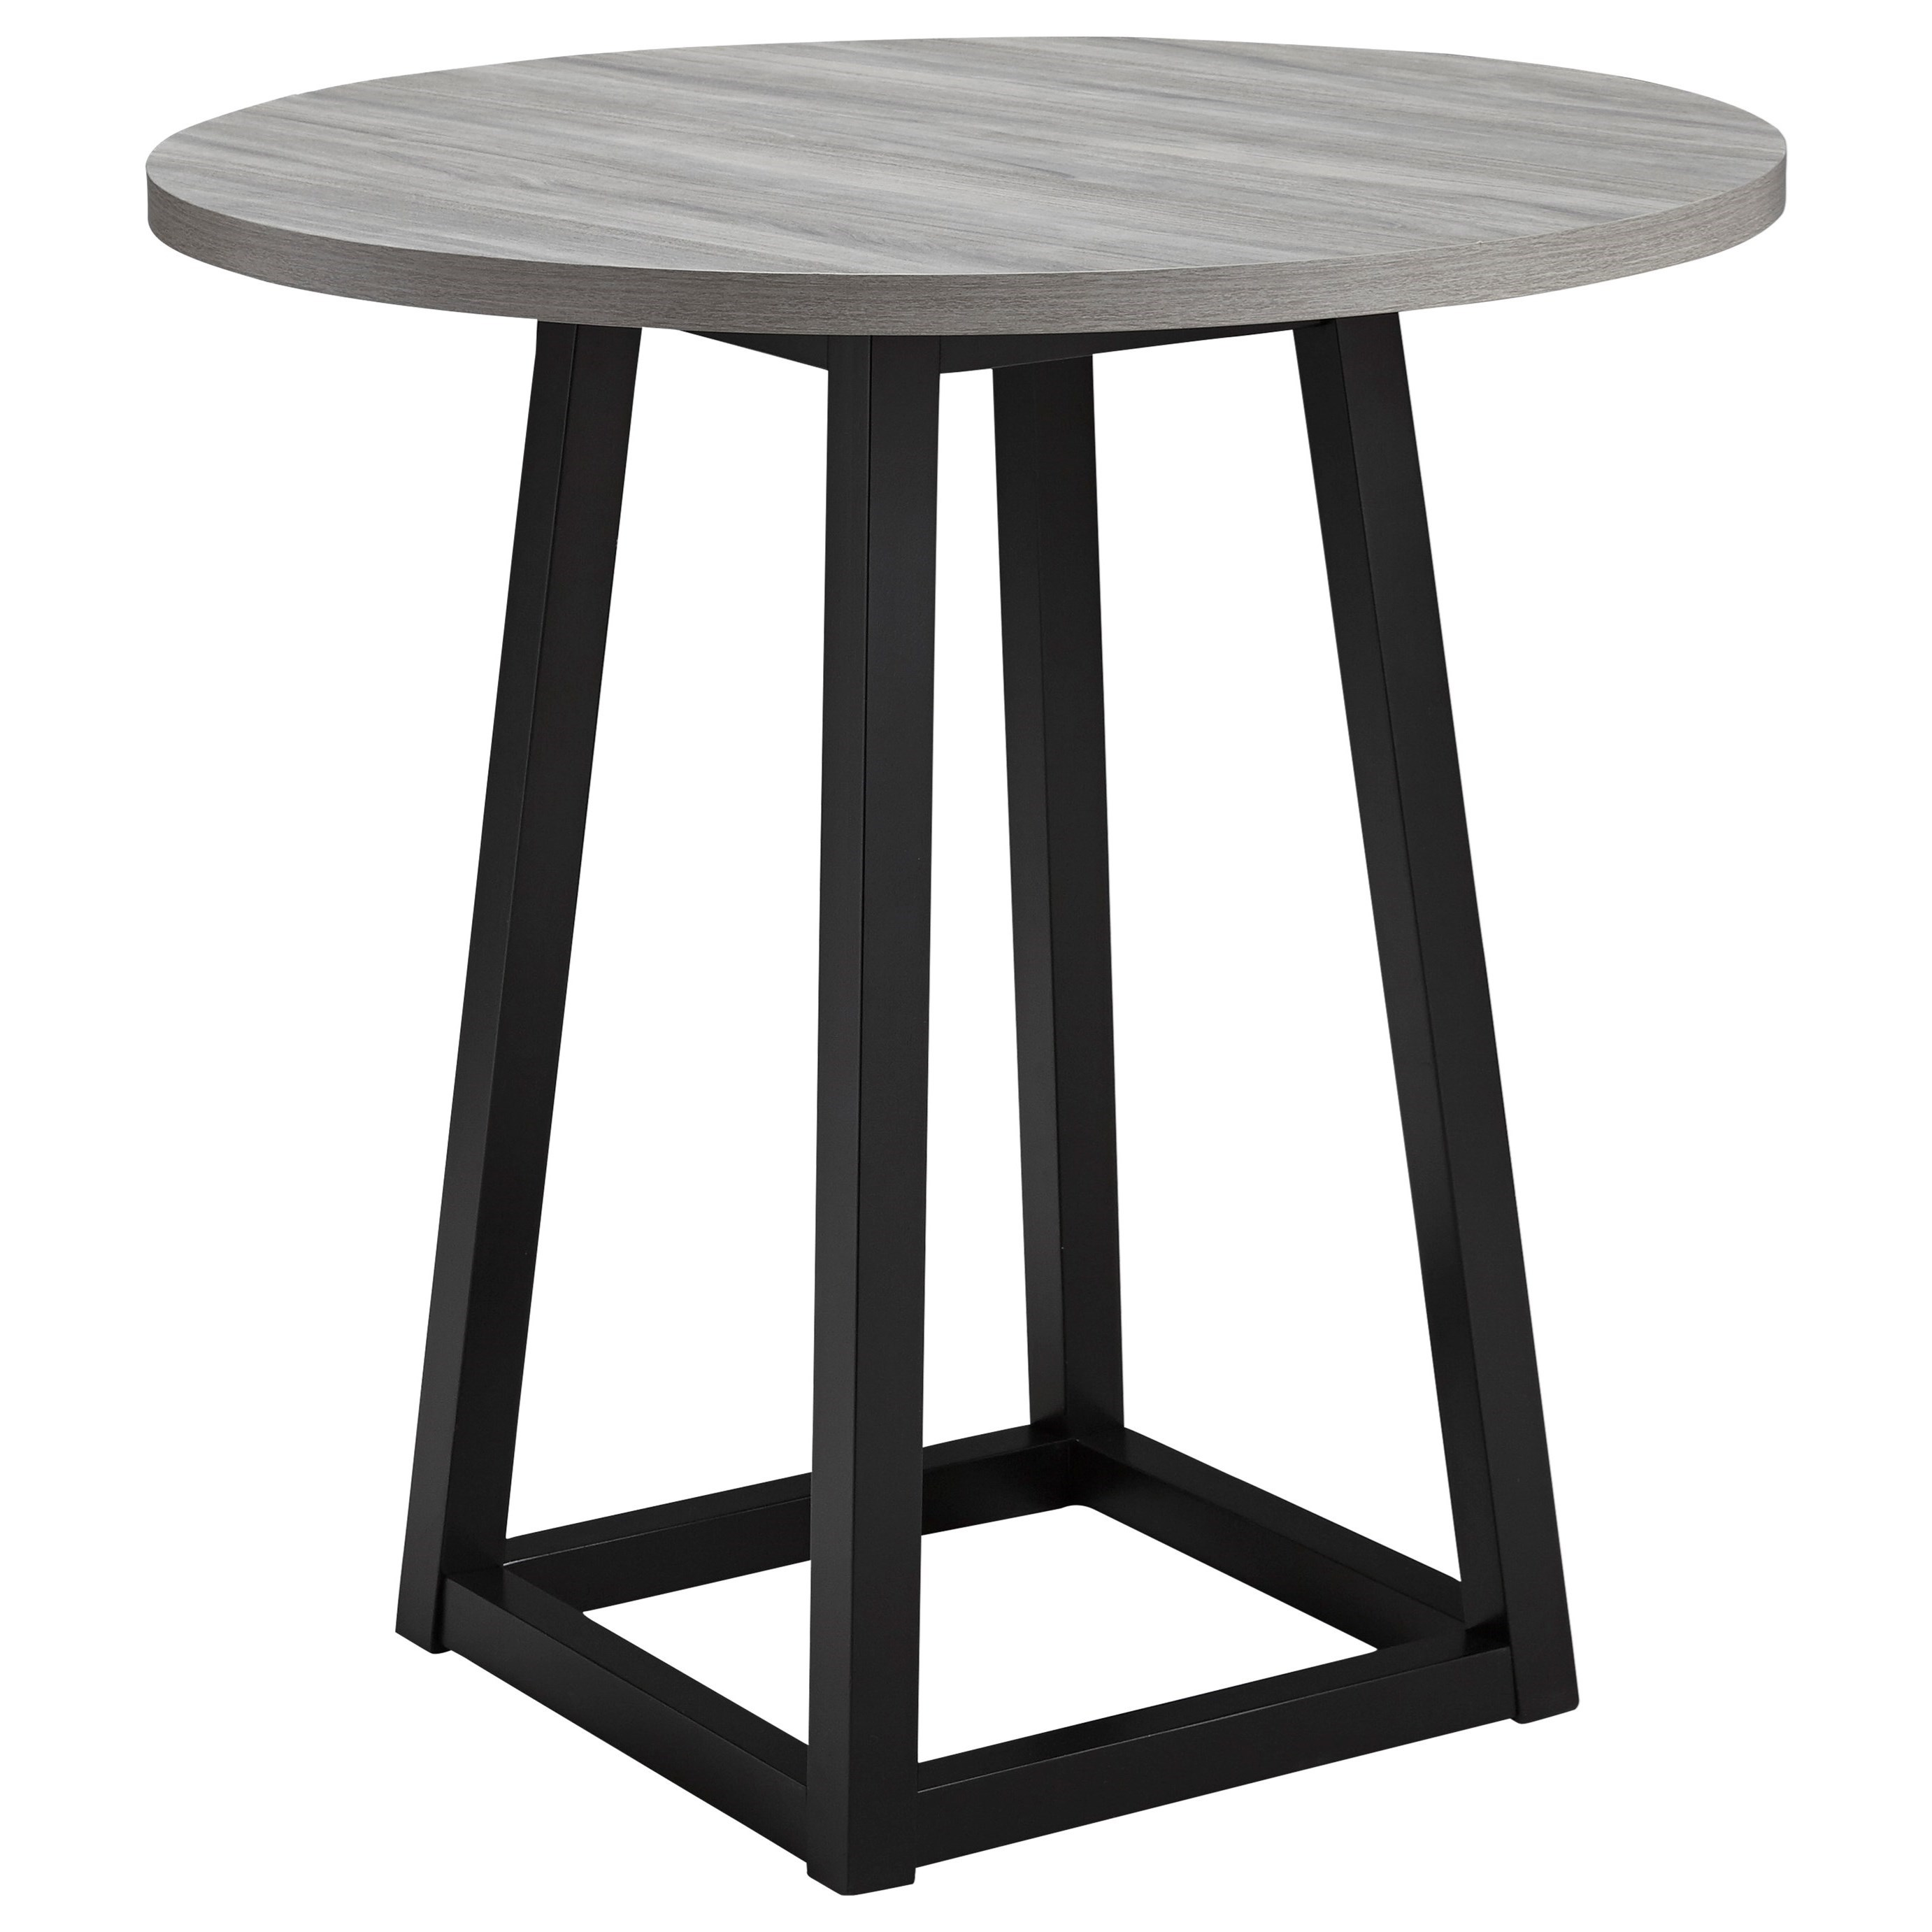 Showdell Round Counter Table by Signature Design by Ashley at Sam Levitz Outlet